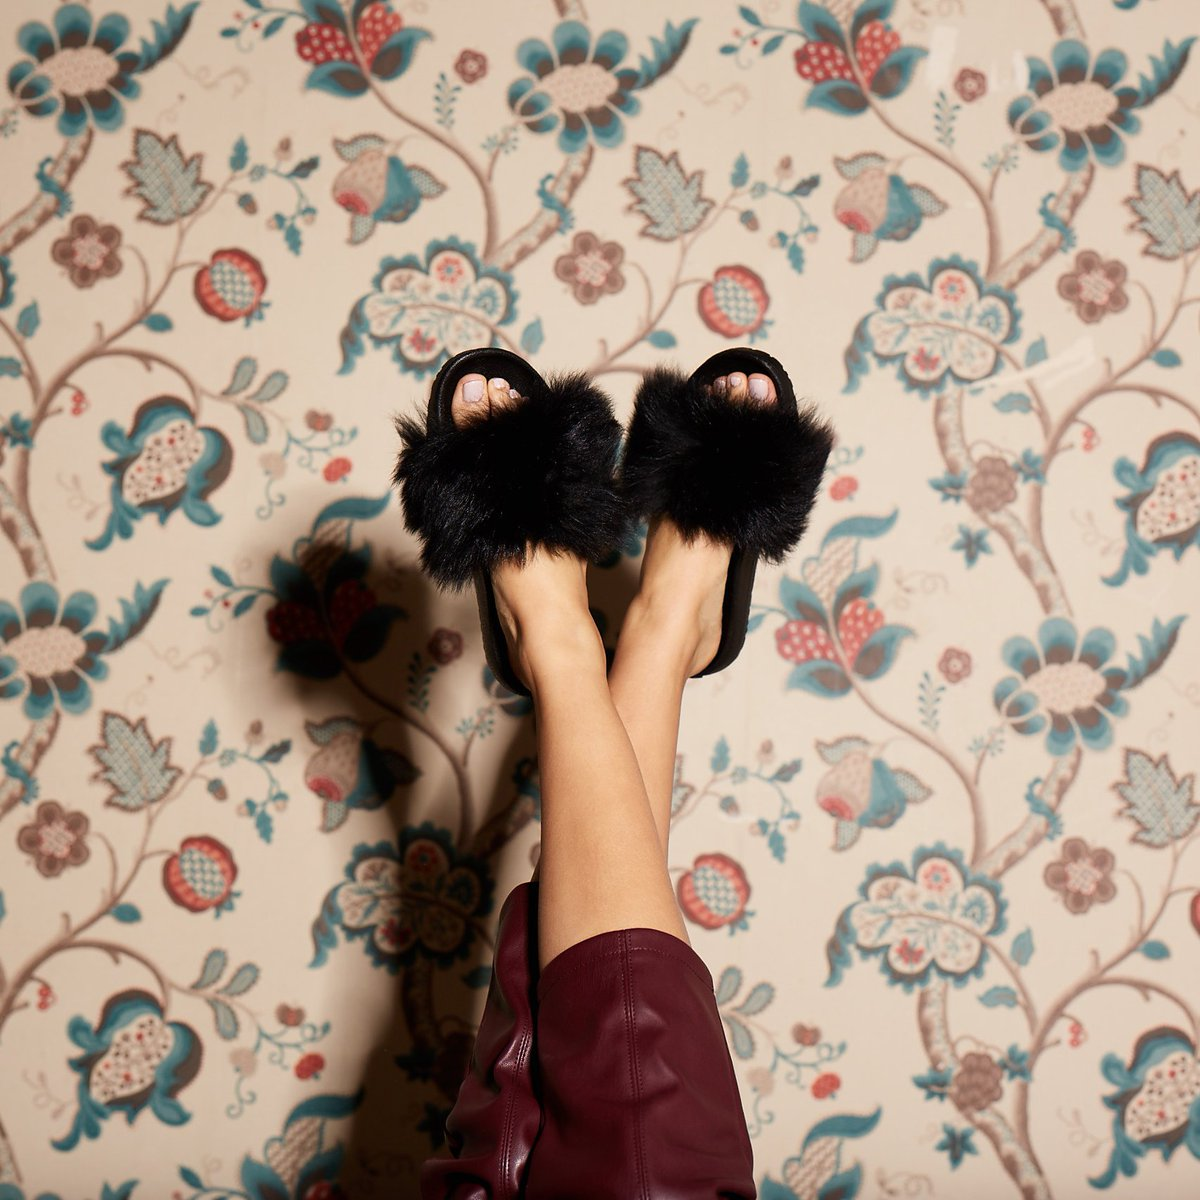 Stand out in the crowd thanks to fluffy UGG #slippers ✨💫 https://t.co/KL9fXFTxbt